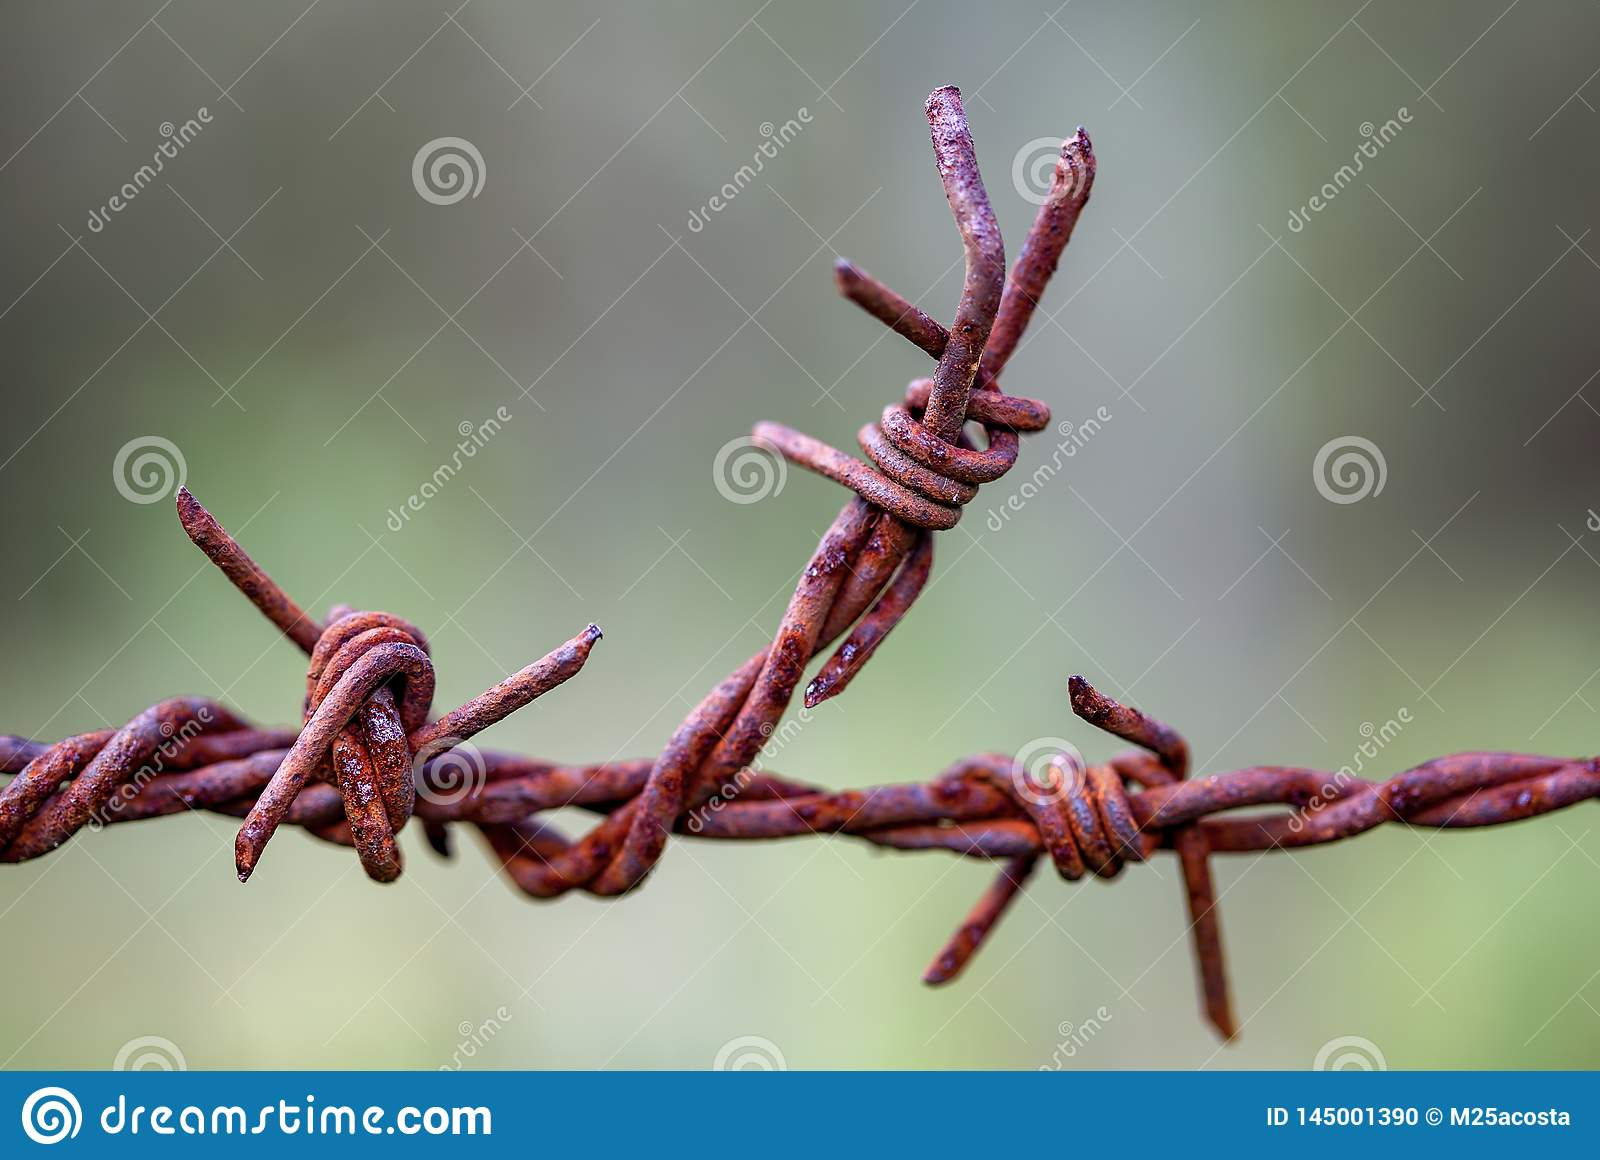 Piece of rusted barbed wire